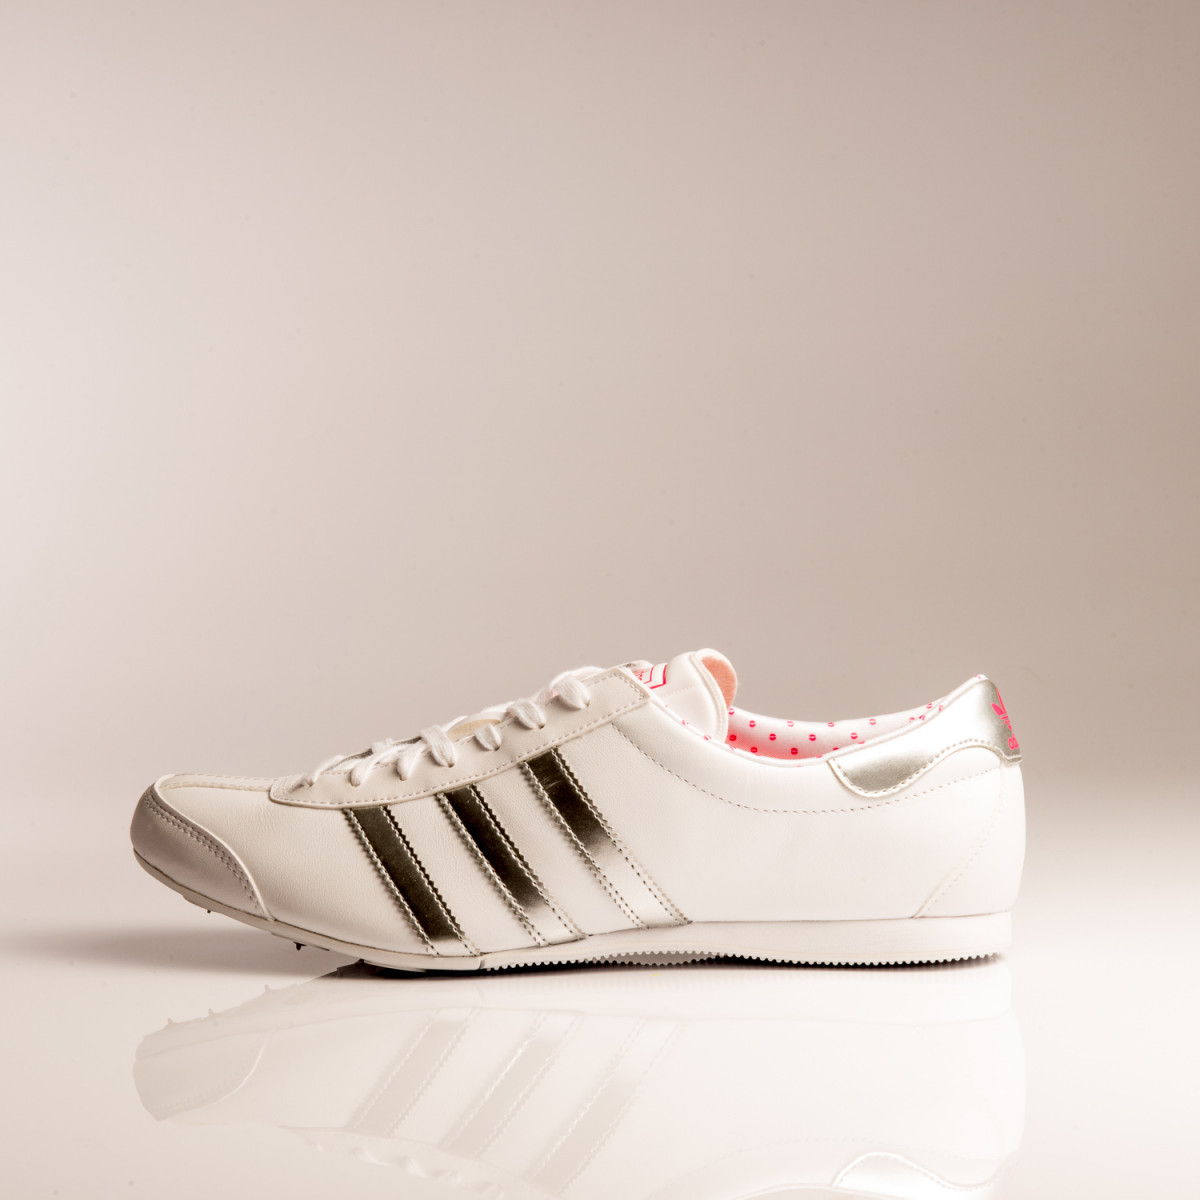 ZAPATILLAS ADIDAS ORIGINALS ADITRACK W RUN